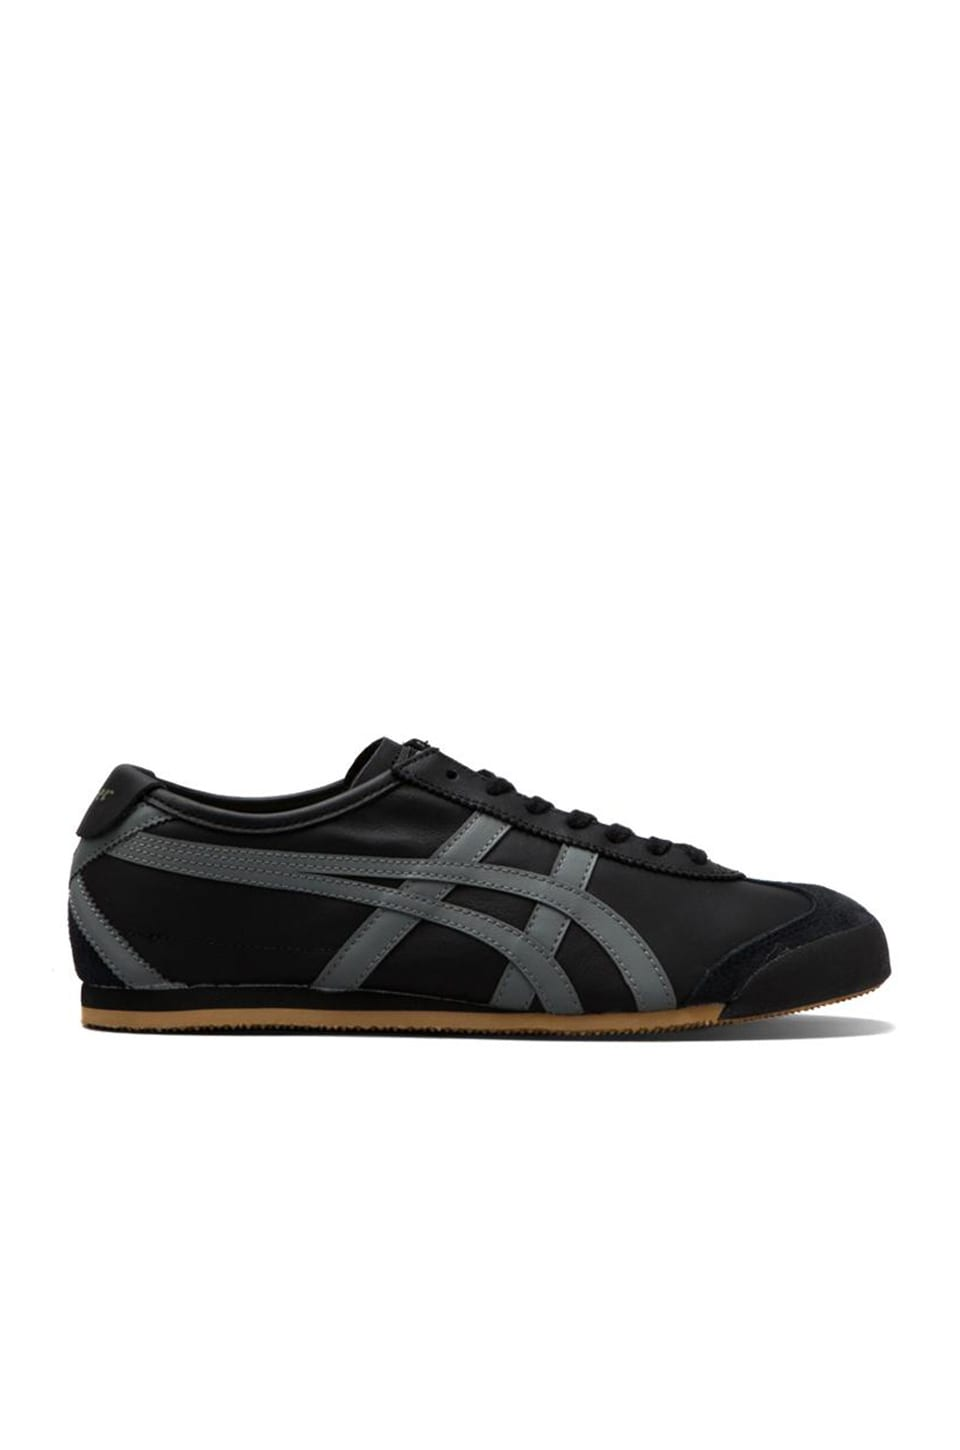 Onitsuka Tiger Mexico 66 in Black/Grey/Gold